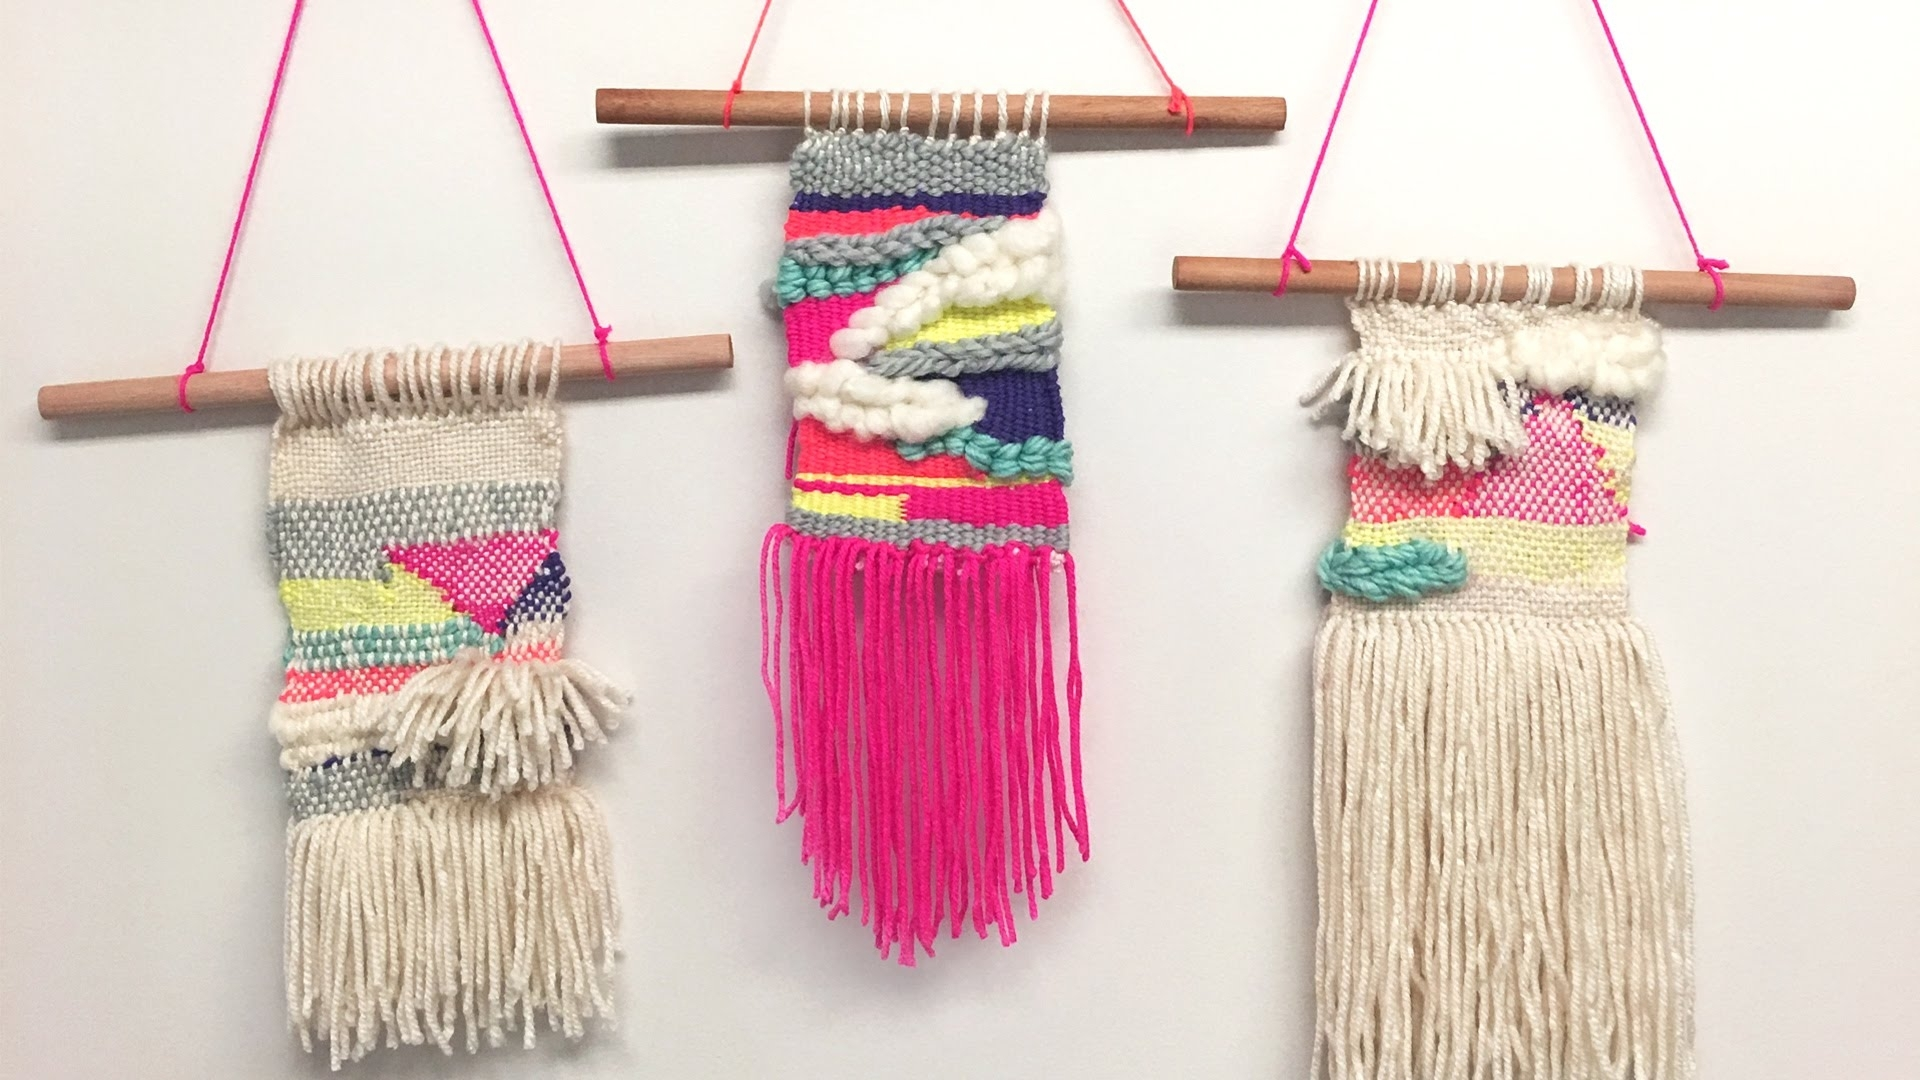 Whatdaymade Diy: Tissage Woven Wall Hagging – Youtube For Newest Diy Textile Wall Art (Gallery 12 of 15)